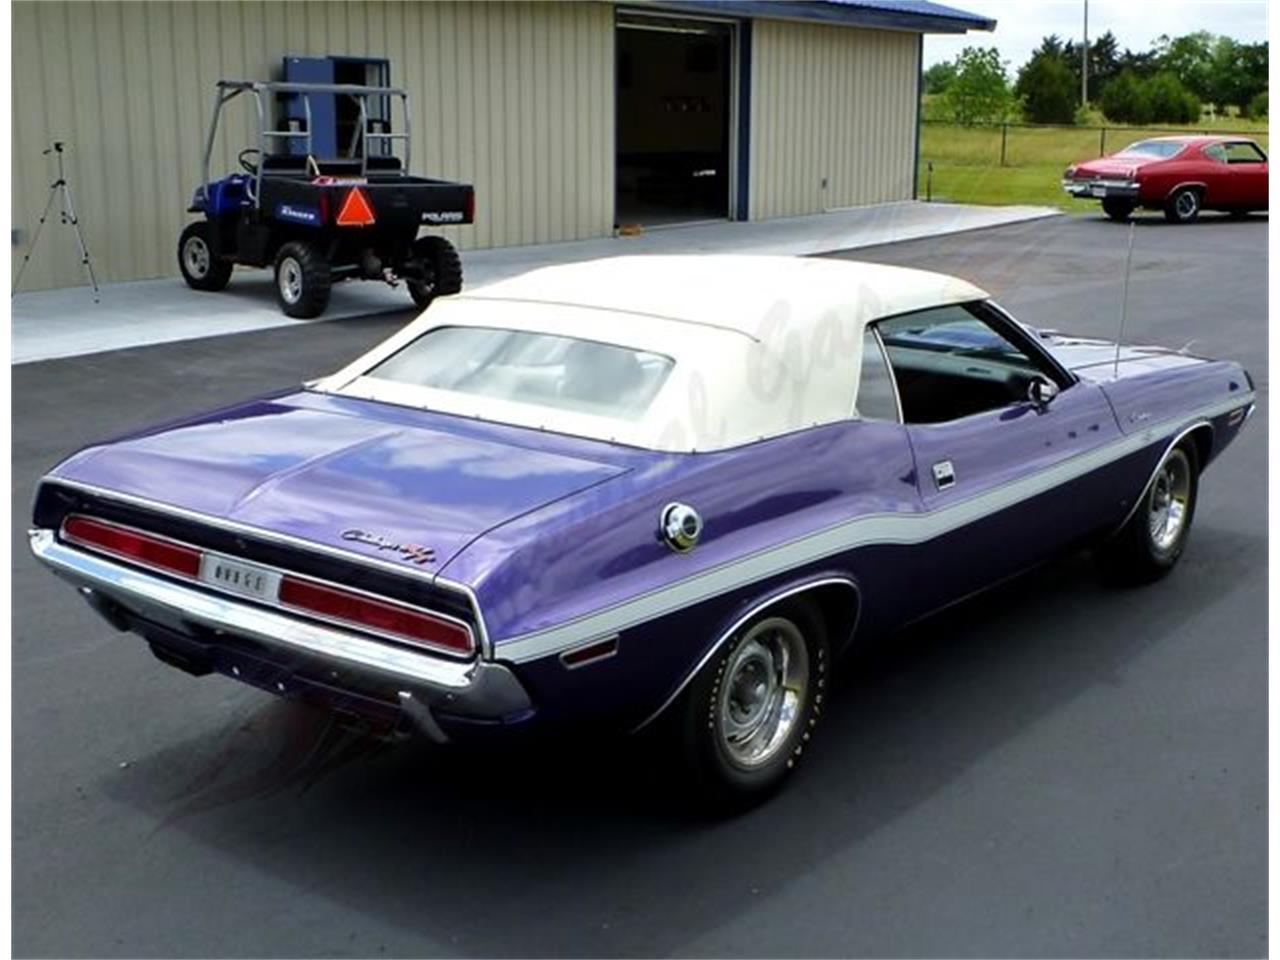 Large Picture of Classic 1970 Challenger R/T - $149,500.00 Offered by Classical Gas Enterprises - QKBE